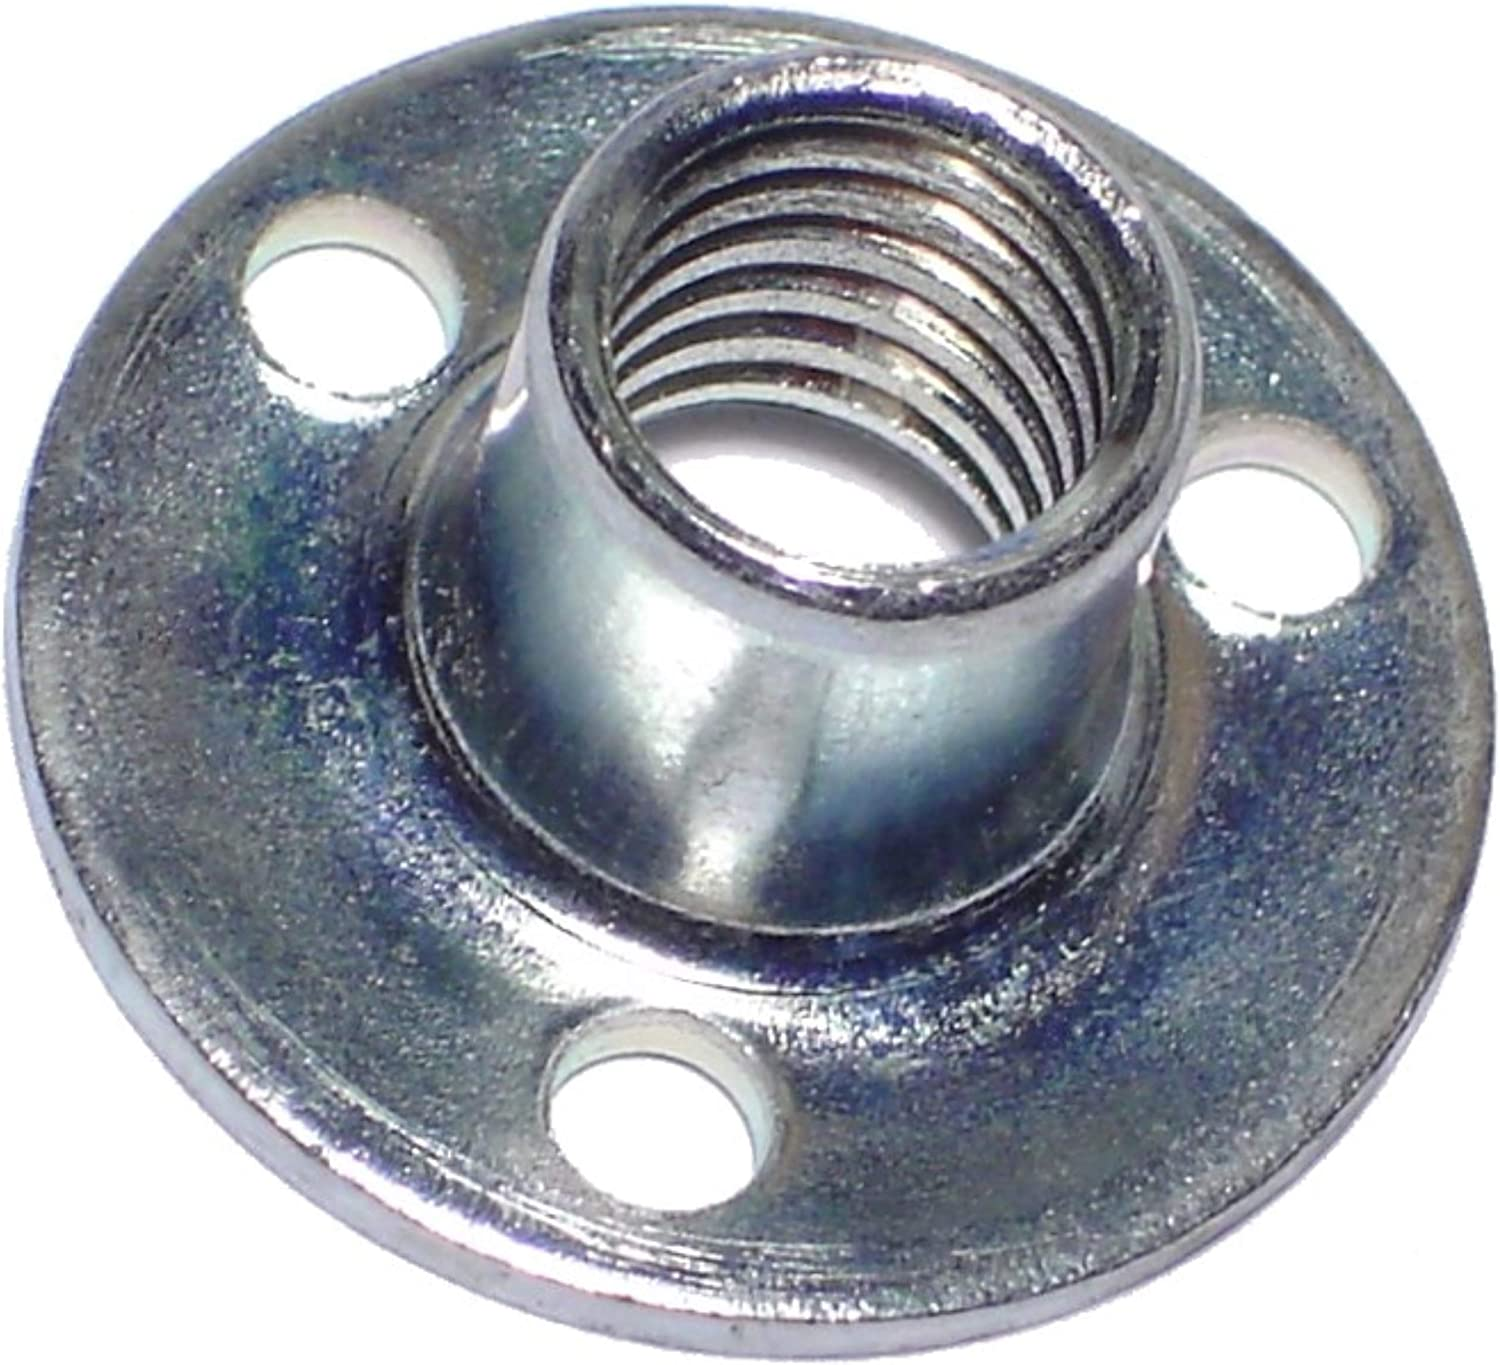 Hard-to-Find Fastener 014973323165 323165 Tee Nut, 3/8-16 x 7/16""